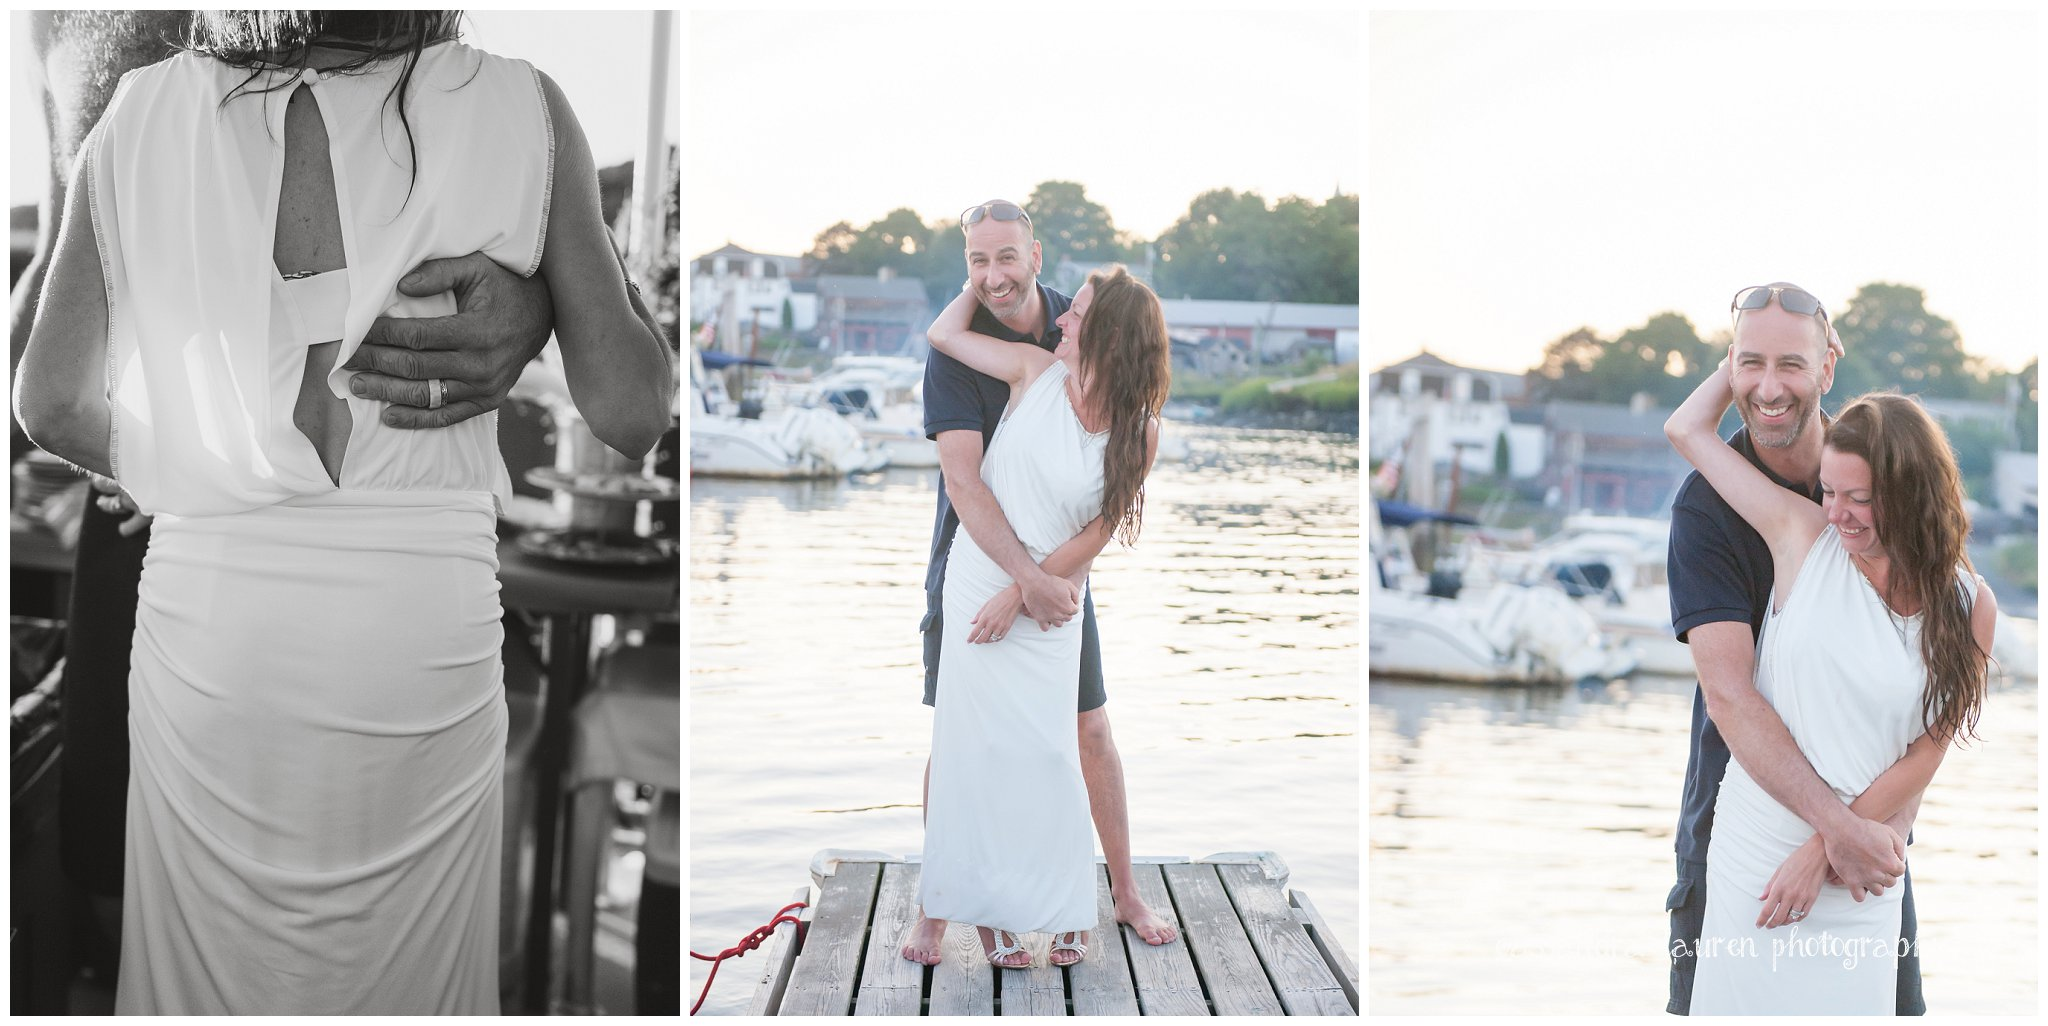 Essex River Cruises Bride and Groom wedding photographer